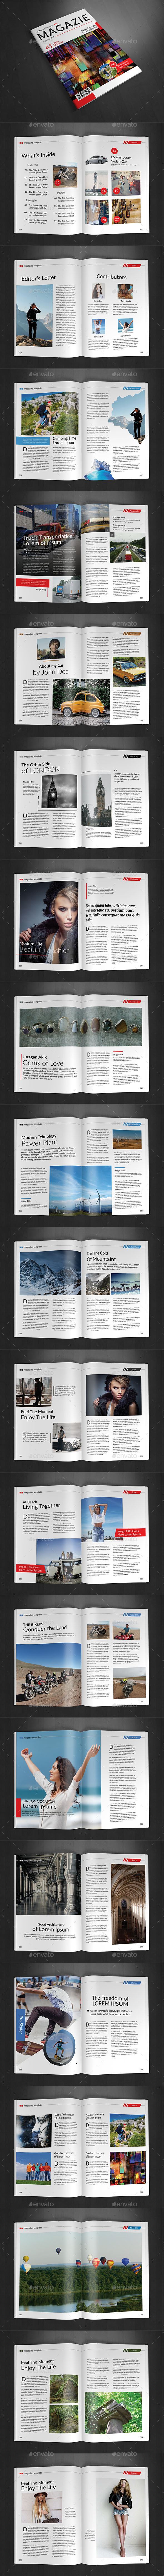 A4 Magazine Template Vol 17